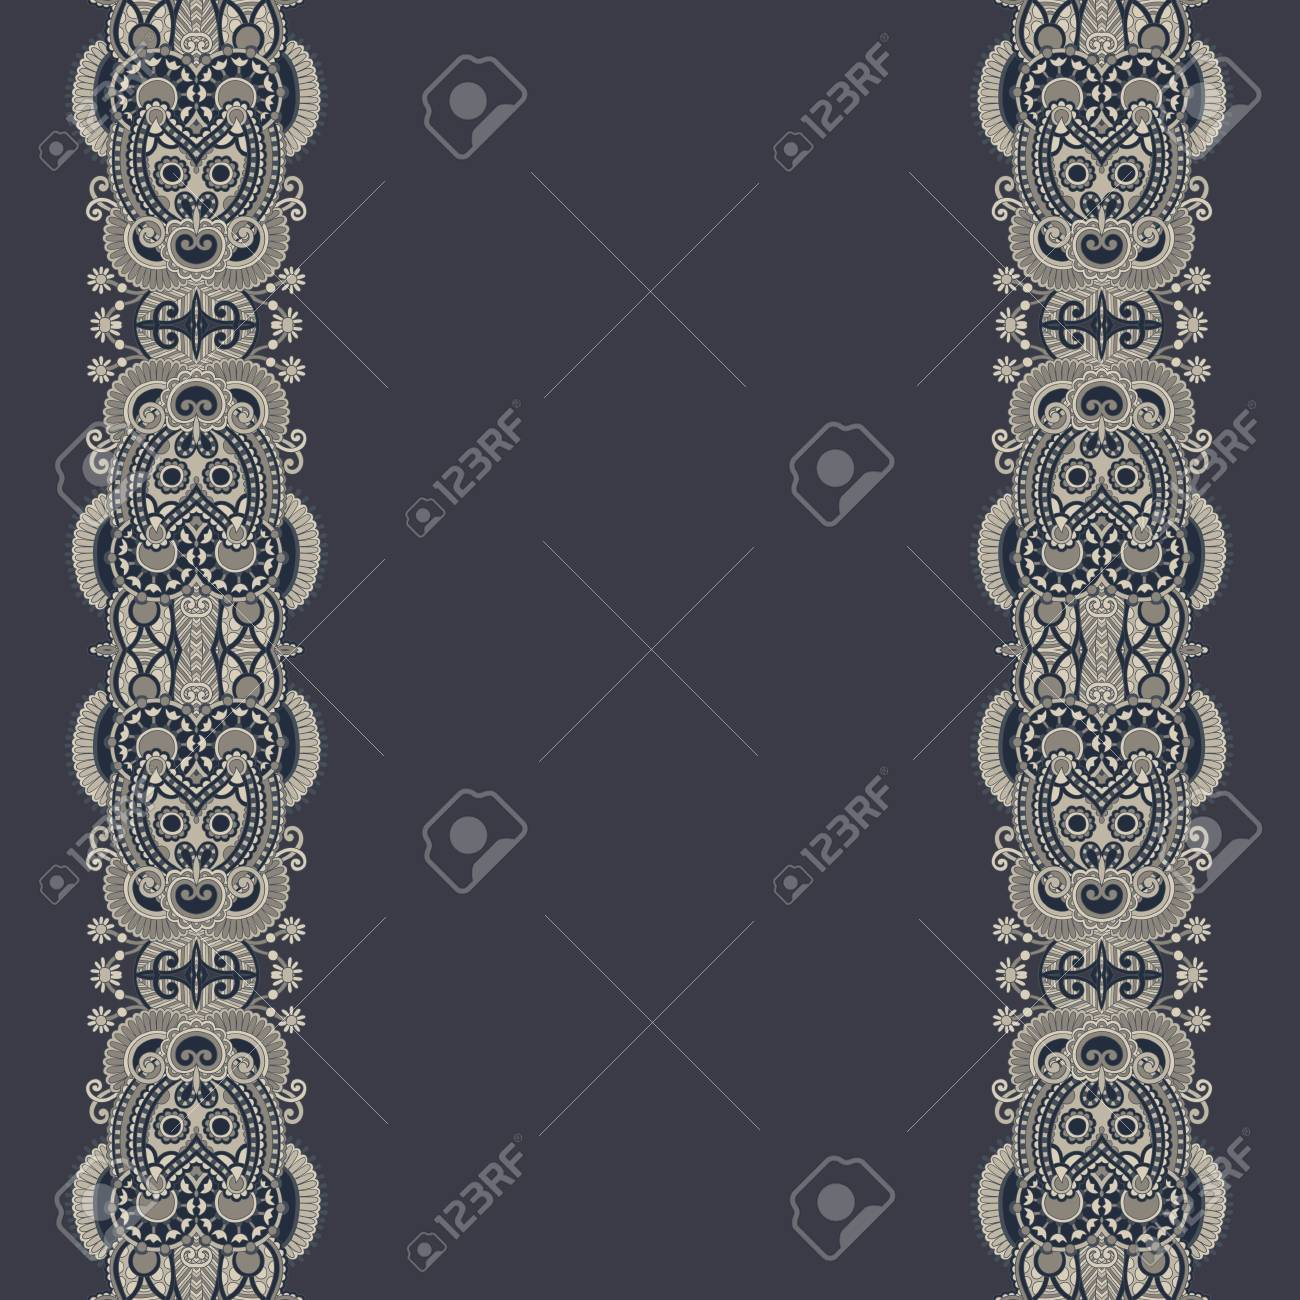 ornate floral background with ornament stripe Stock Vector - 17367428